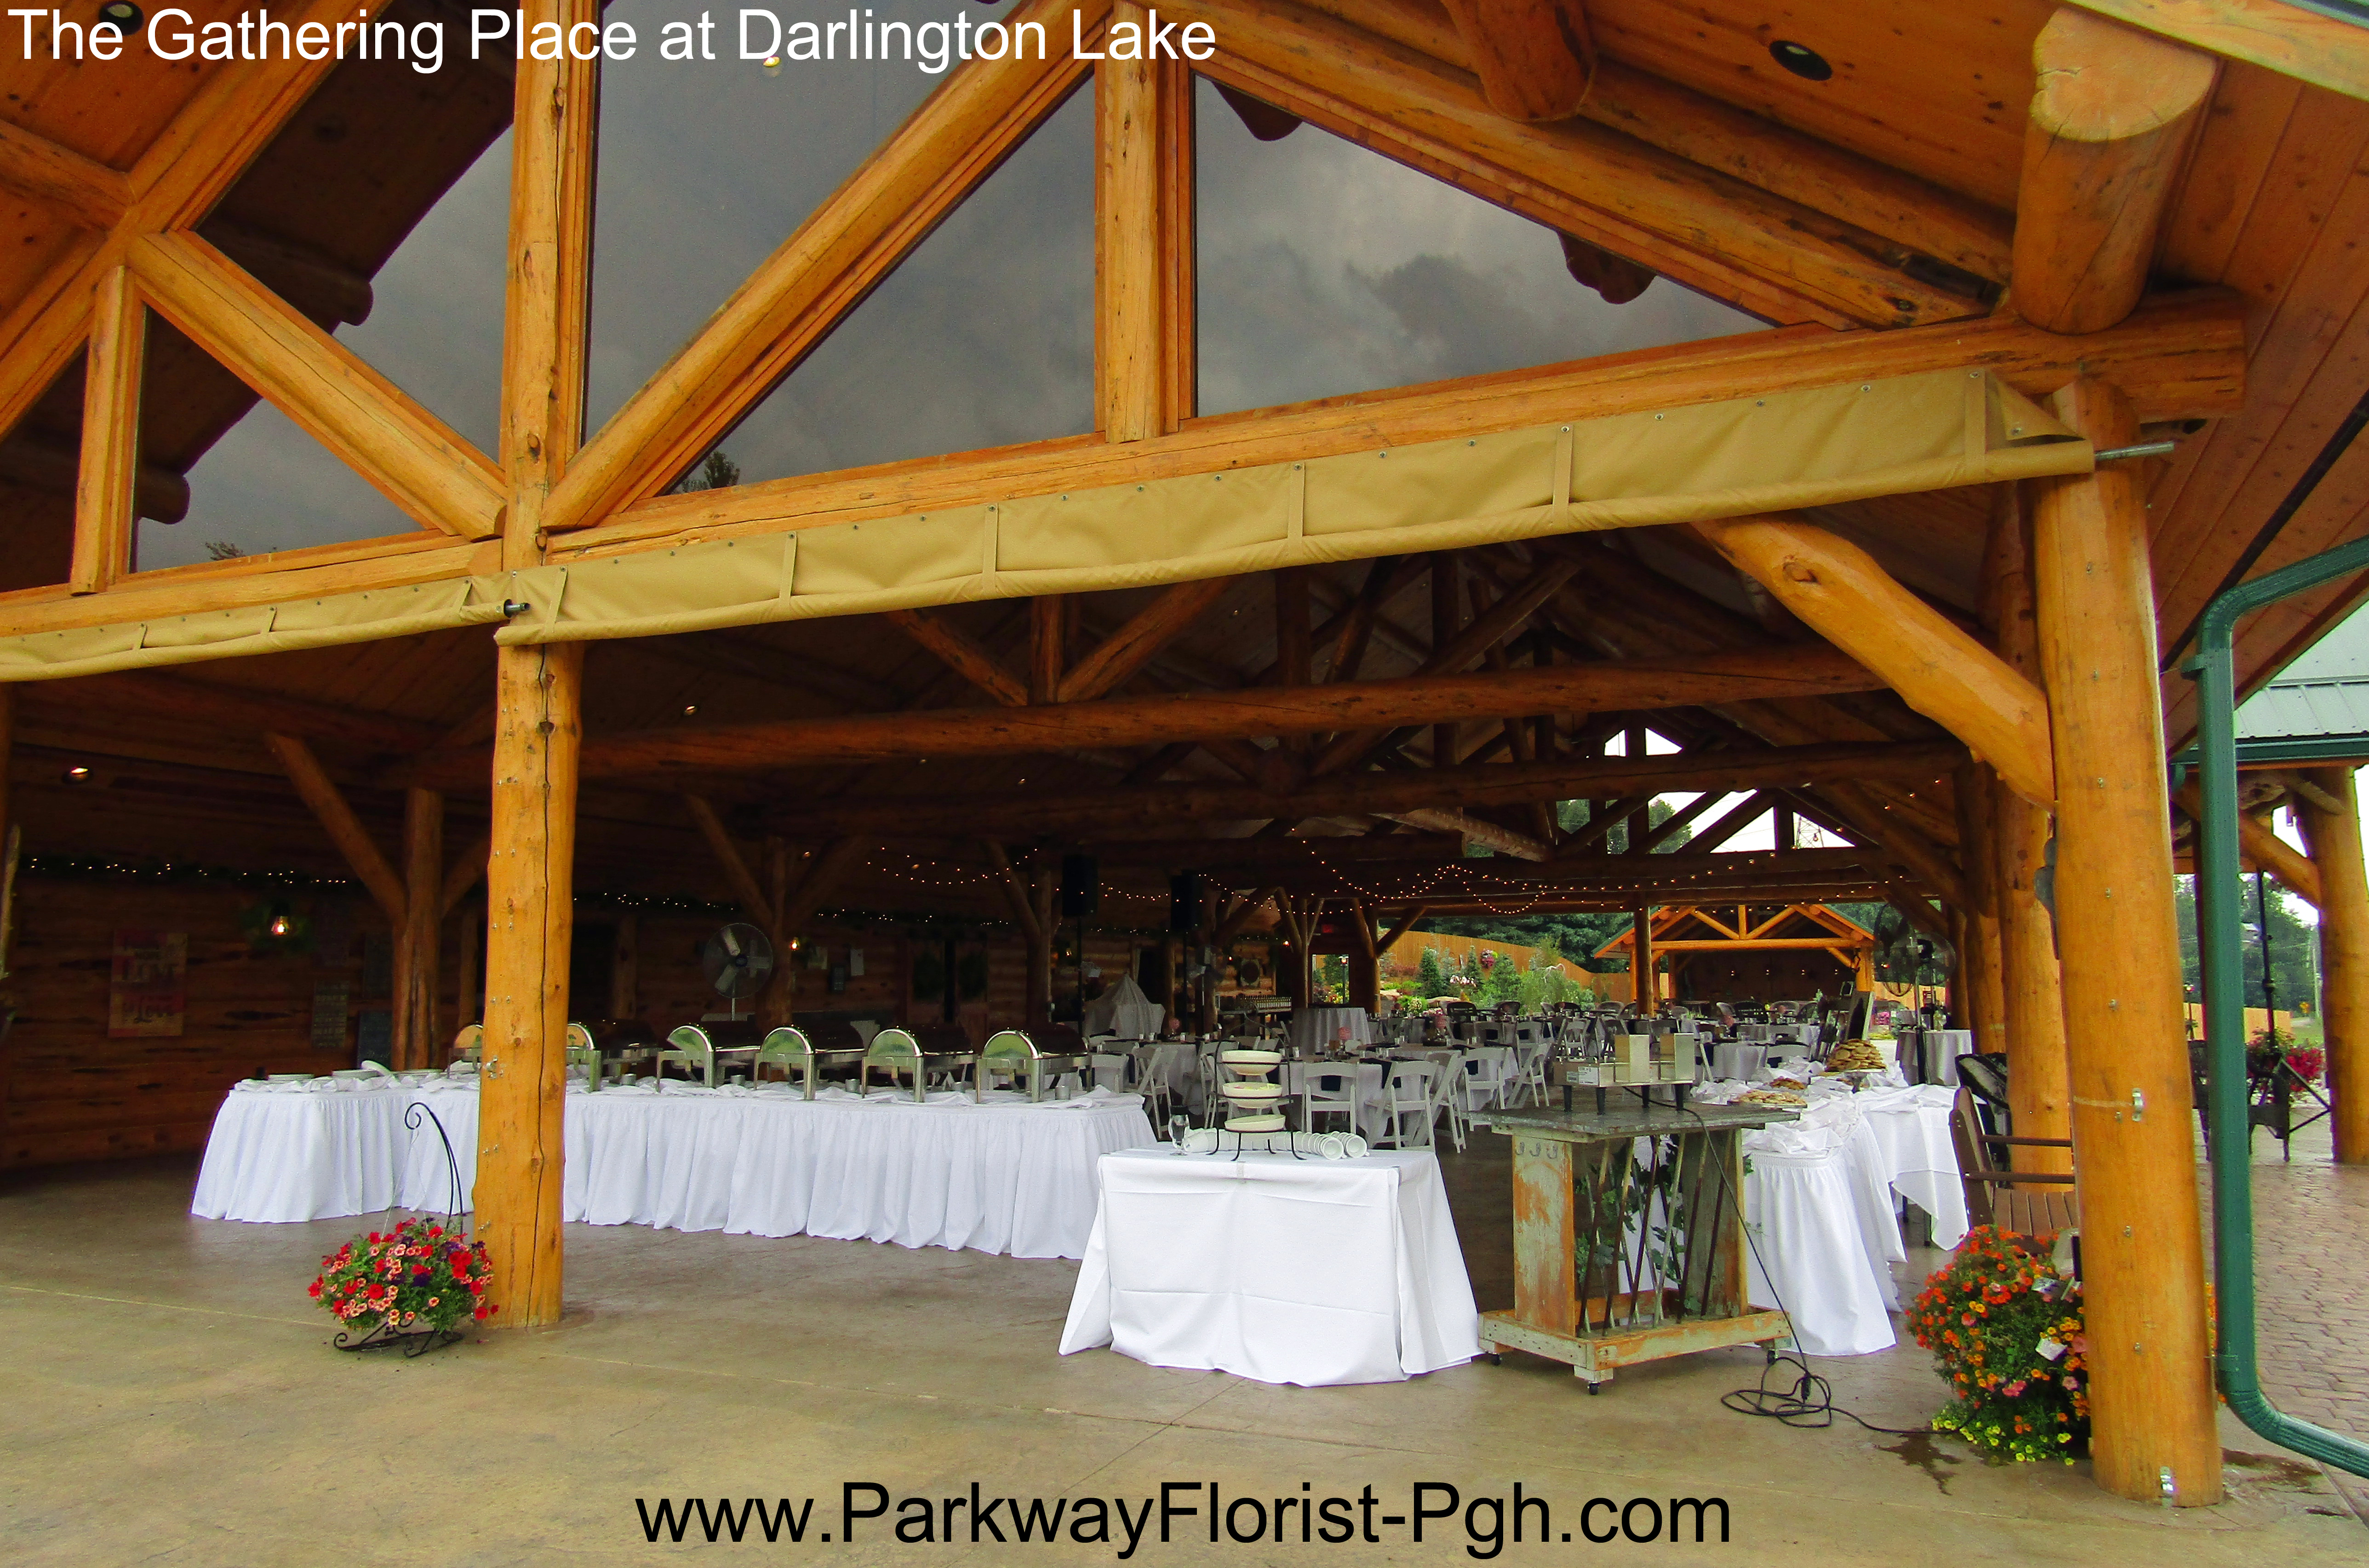 The Gathering Place at Darlington Lake Reception Space